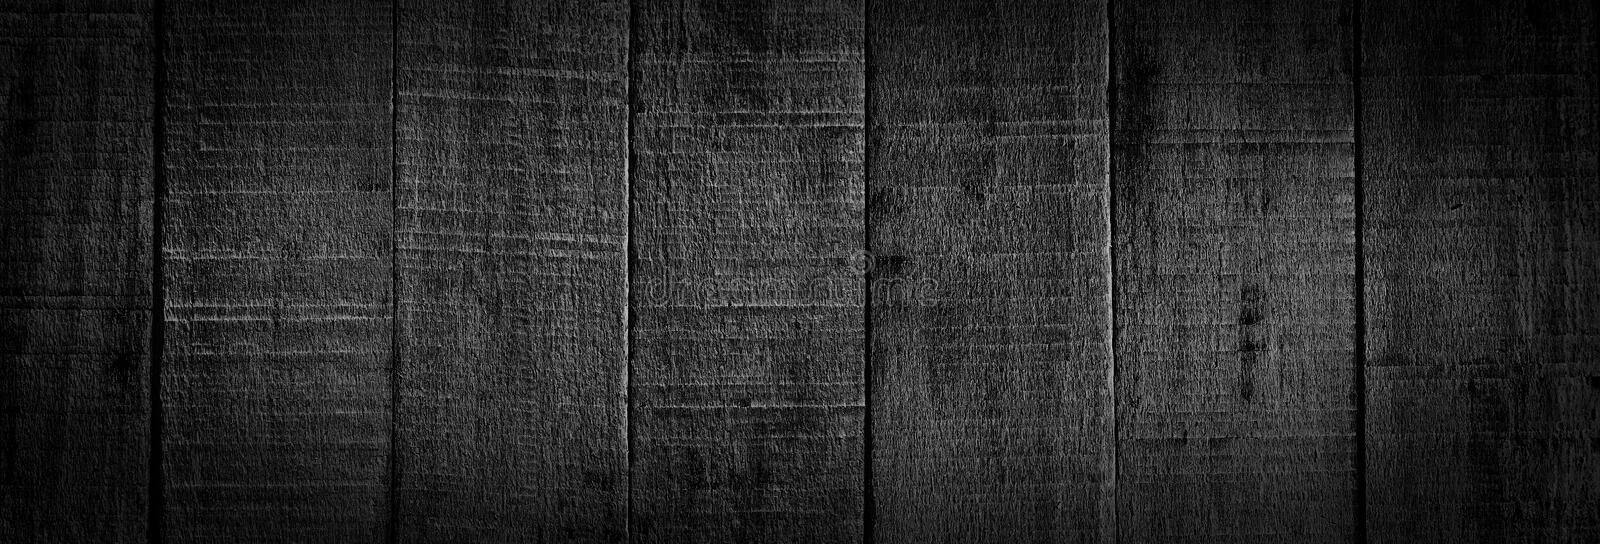 Black wooden boards background stock image